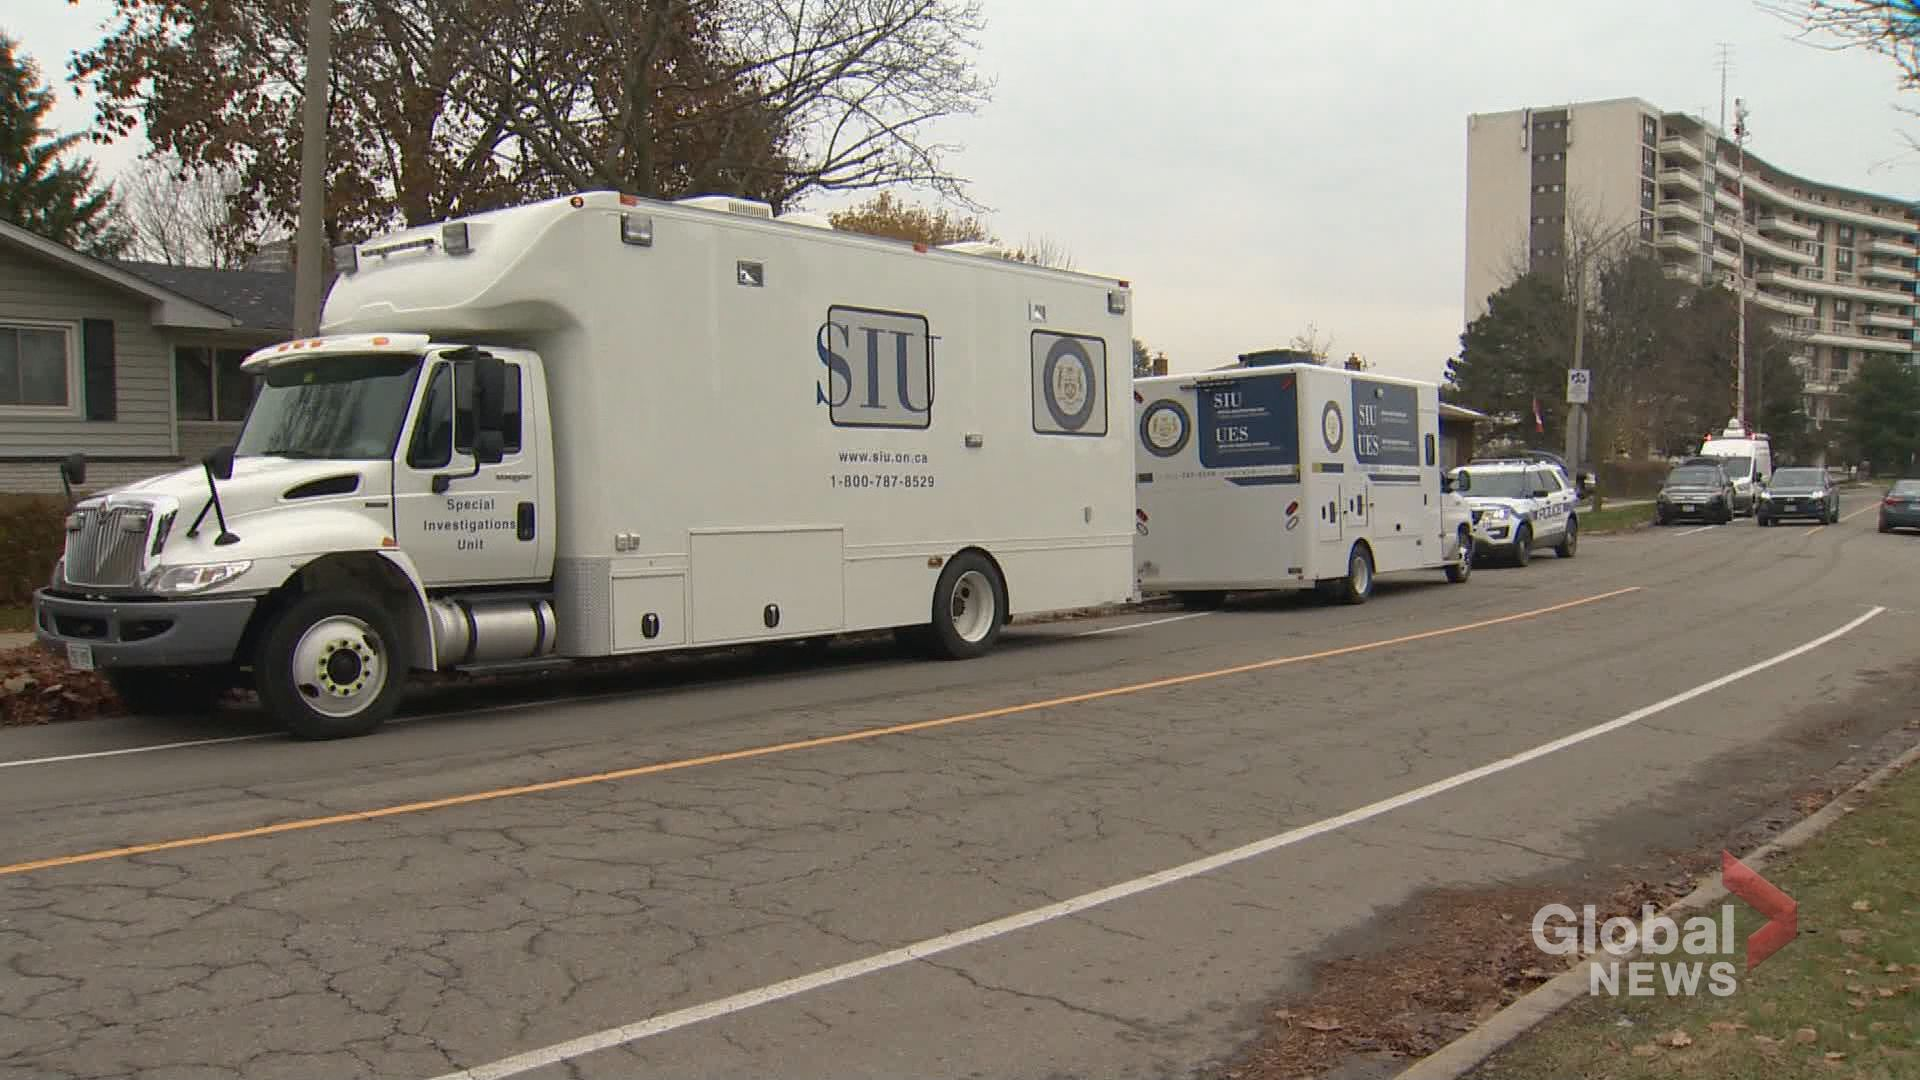 SIU probes death of man following police Taser incident in Mississauga